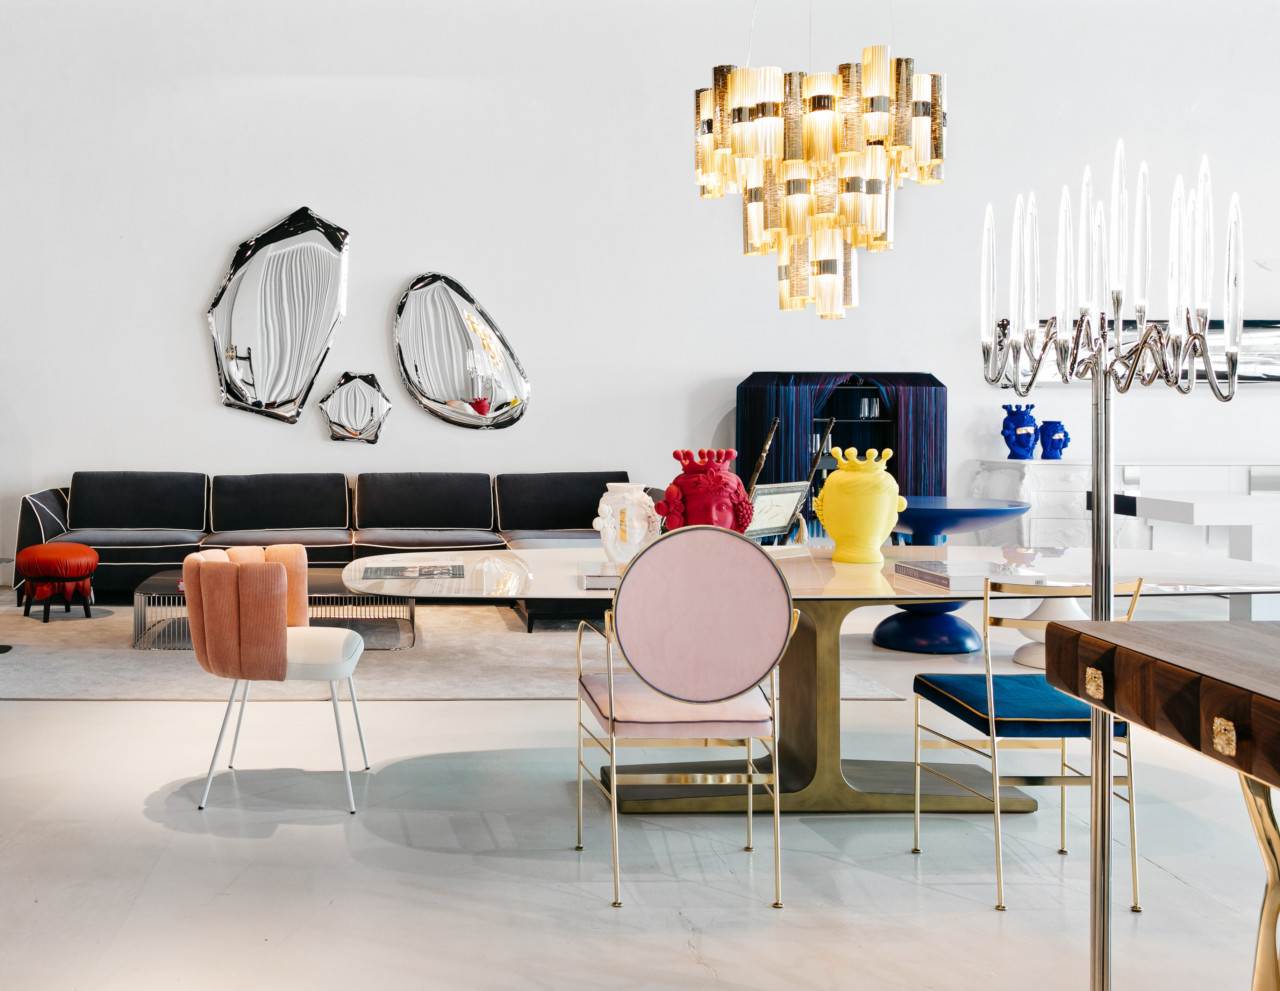 Collectioni's New Showroom Brings Designer Pieces to the West Coast